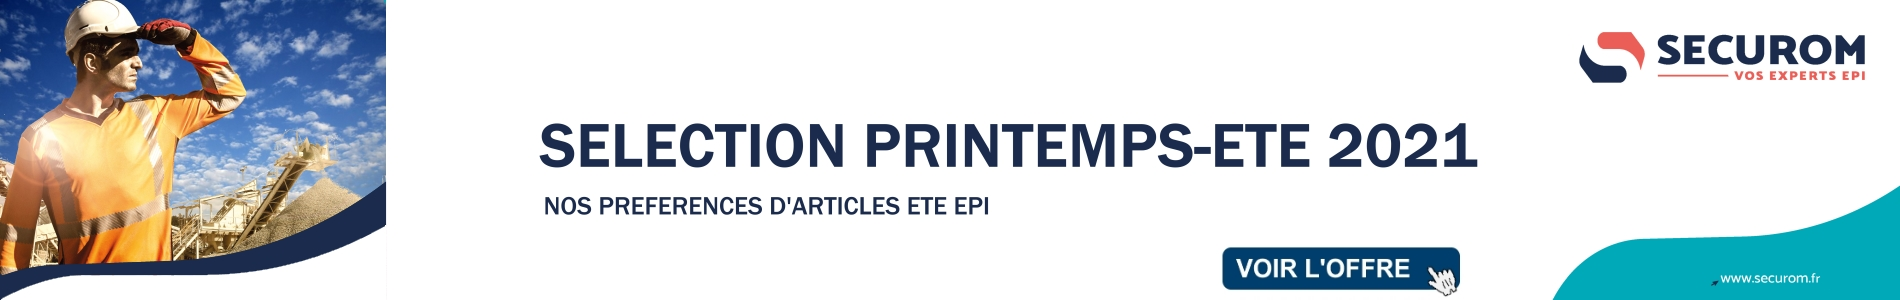 SELECTION EPI PRINTEMPS-ETE 2021